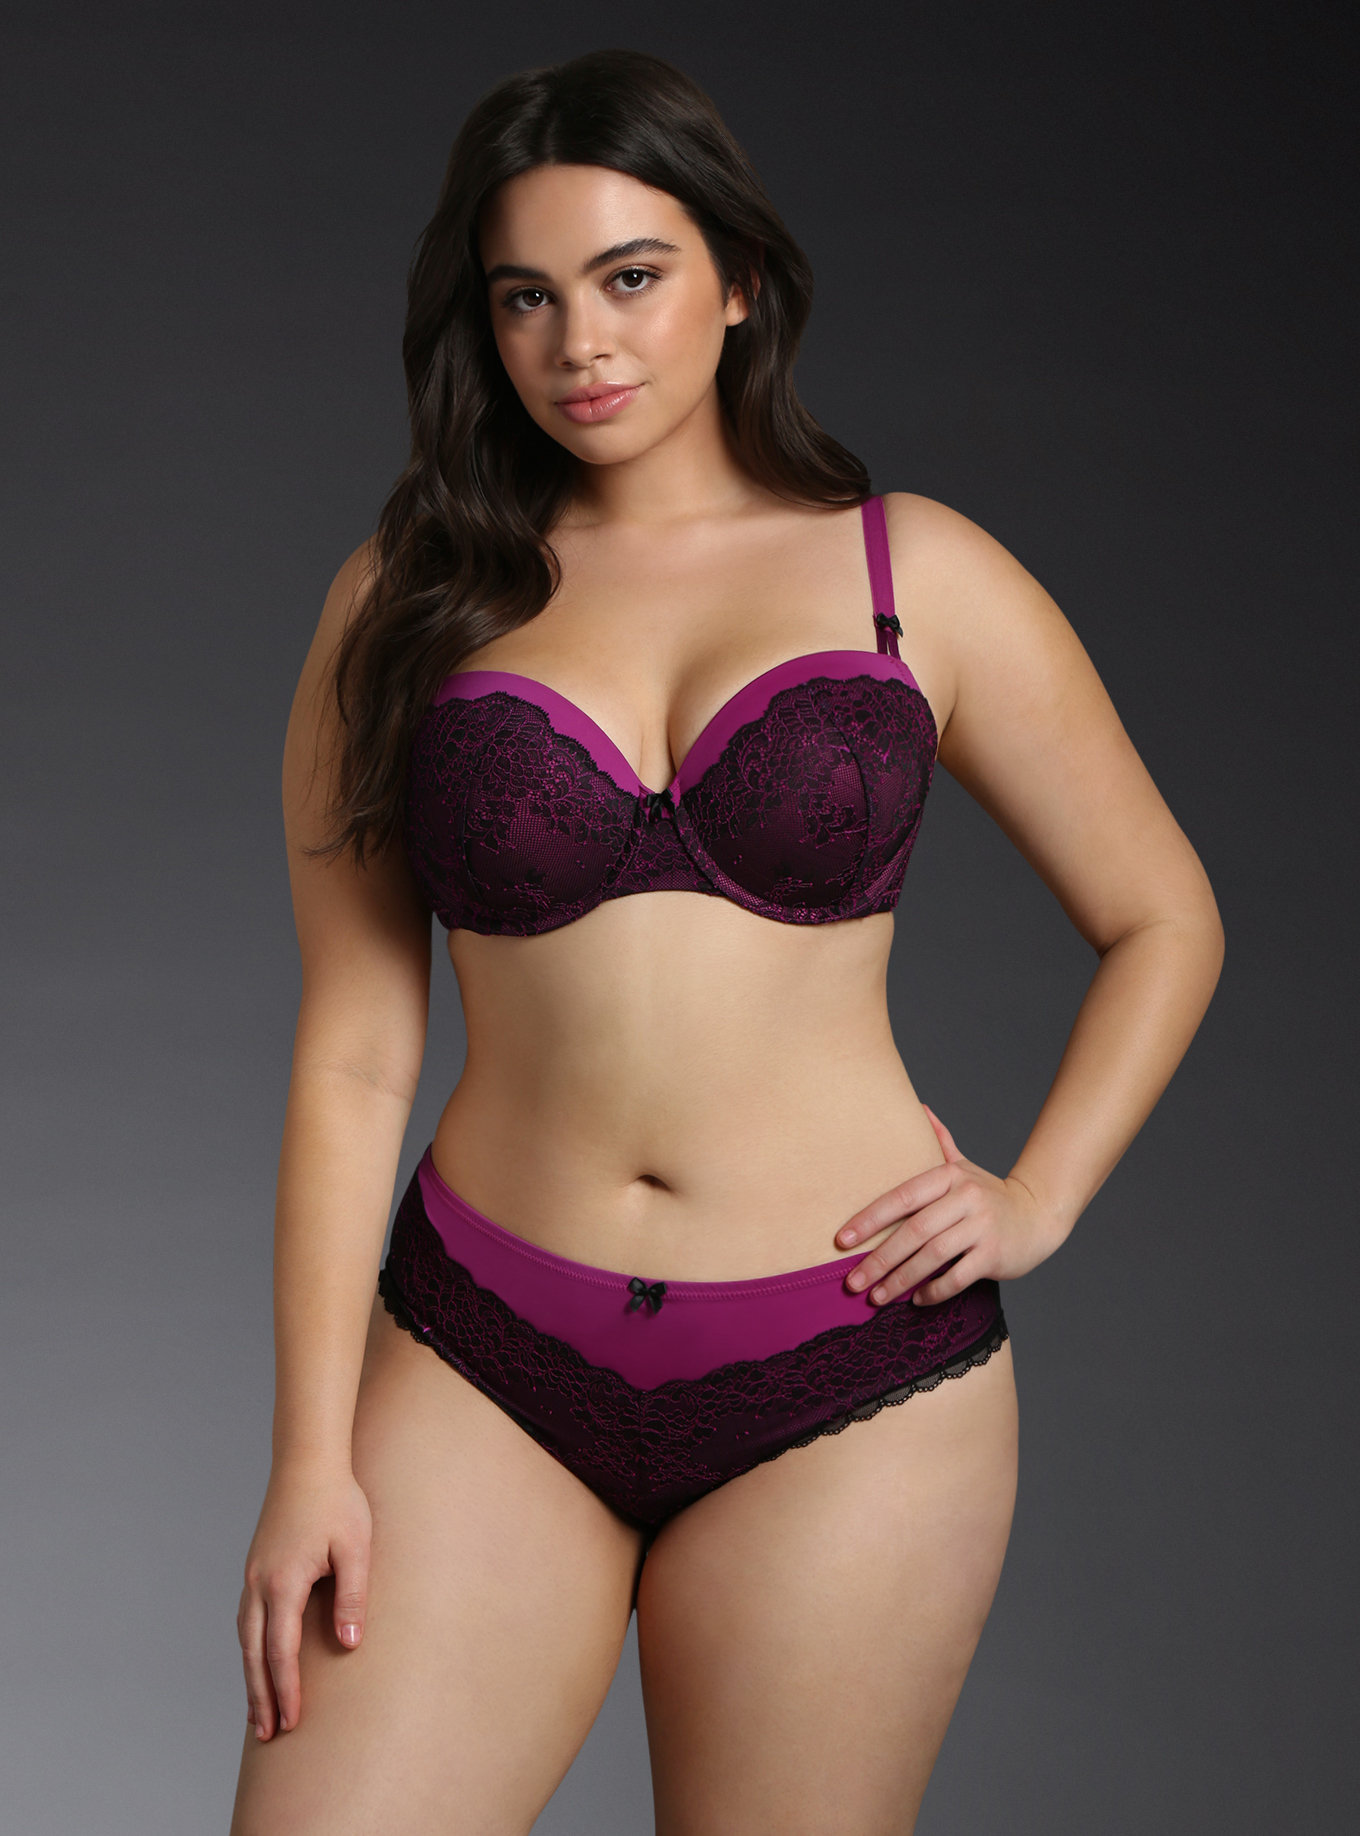 Torrid Plus Size Braza 4-Hook Bra Extender 3-Pack. by Torrid. $ $ 12 99 Prime. FREE Shipping on eligible orders. Some sizes are Prime eligible. out of 5 stars increase the size of your bra's back band up to three inches Braza - Magic Clip Bra Strap Adjuster. by Torrid. $ $ 19 99 Prime. FREE Shipping on eligible orders.